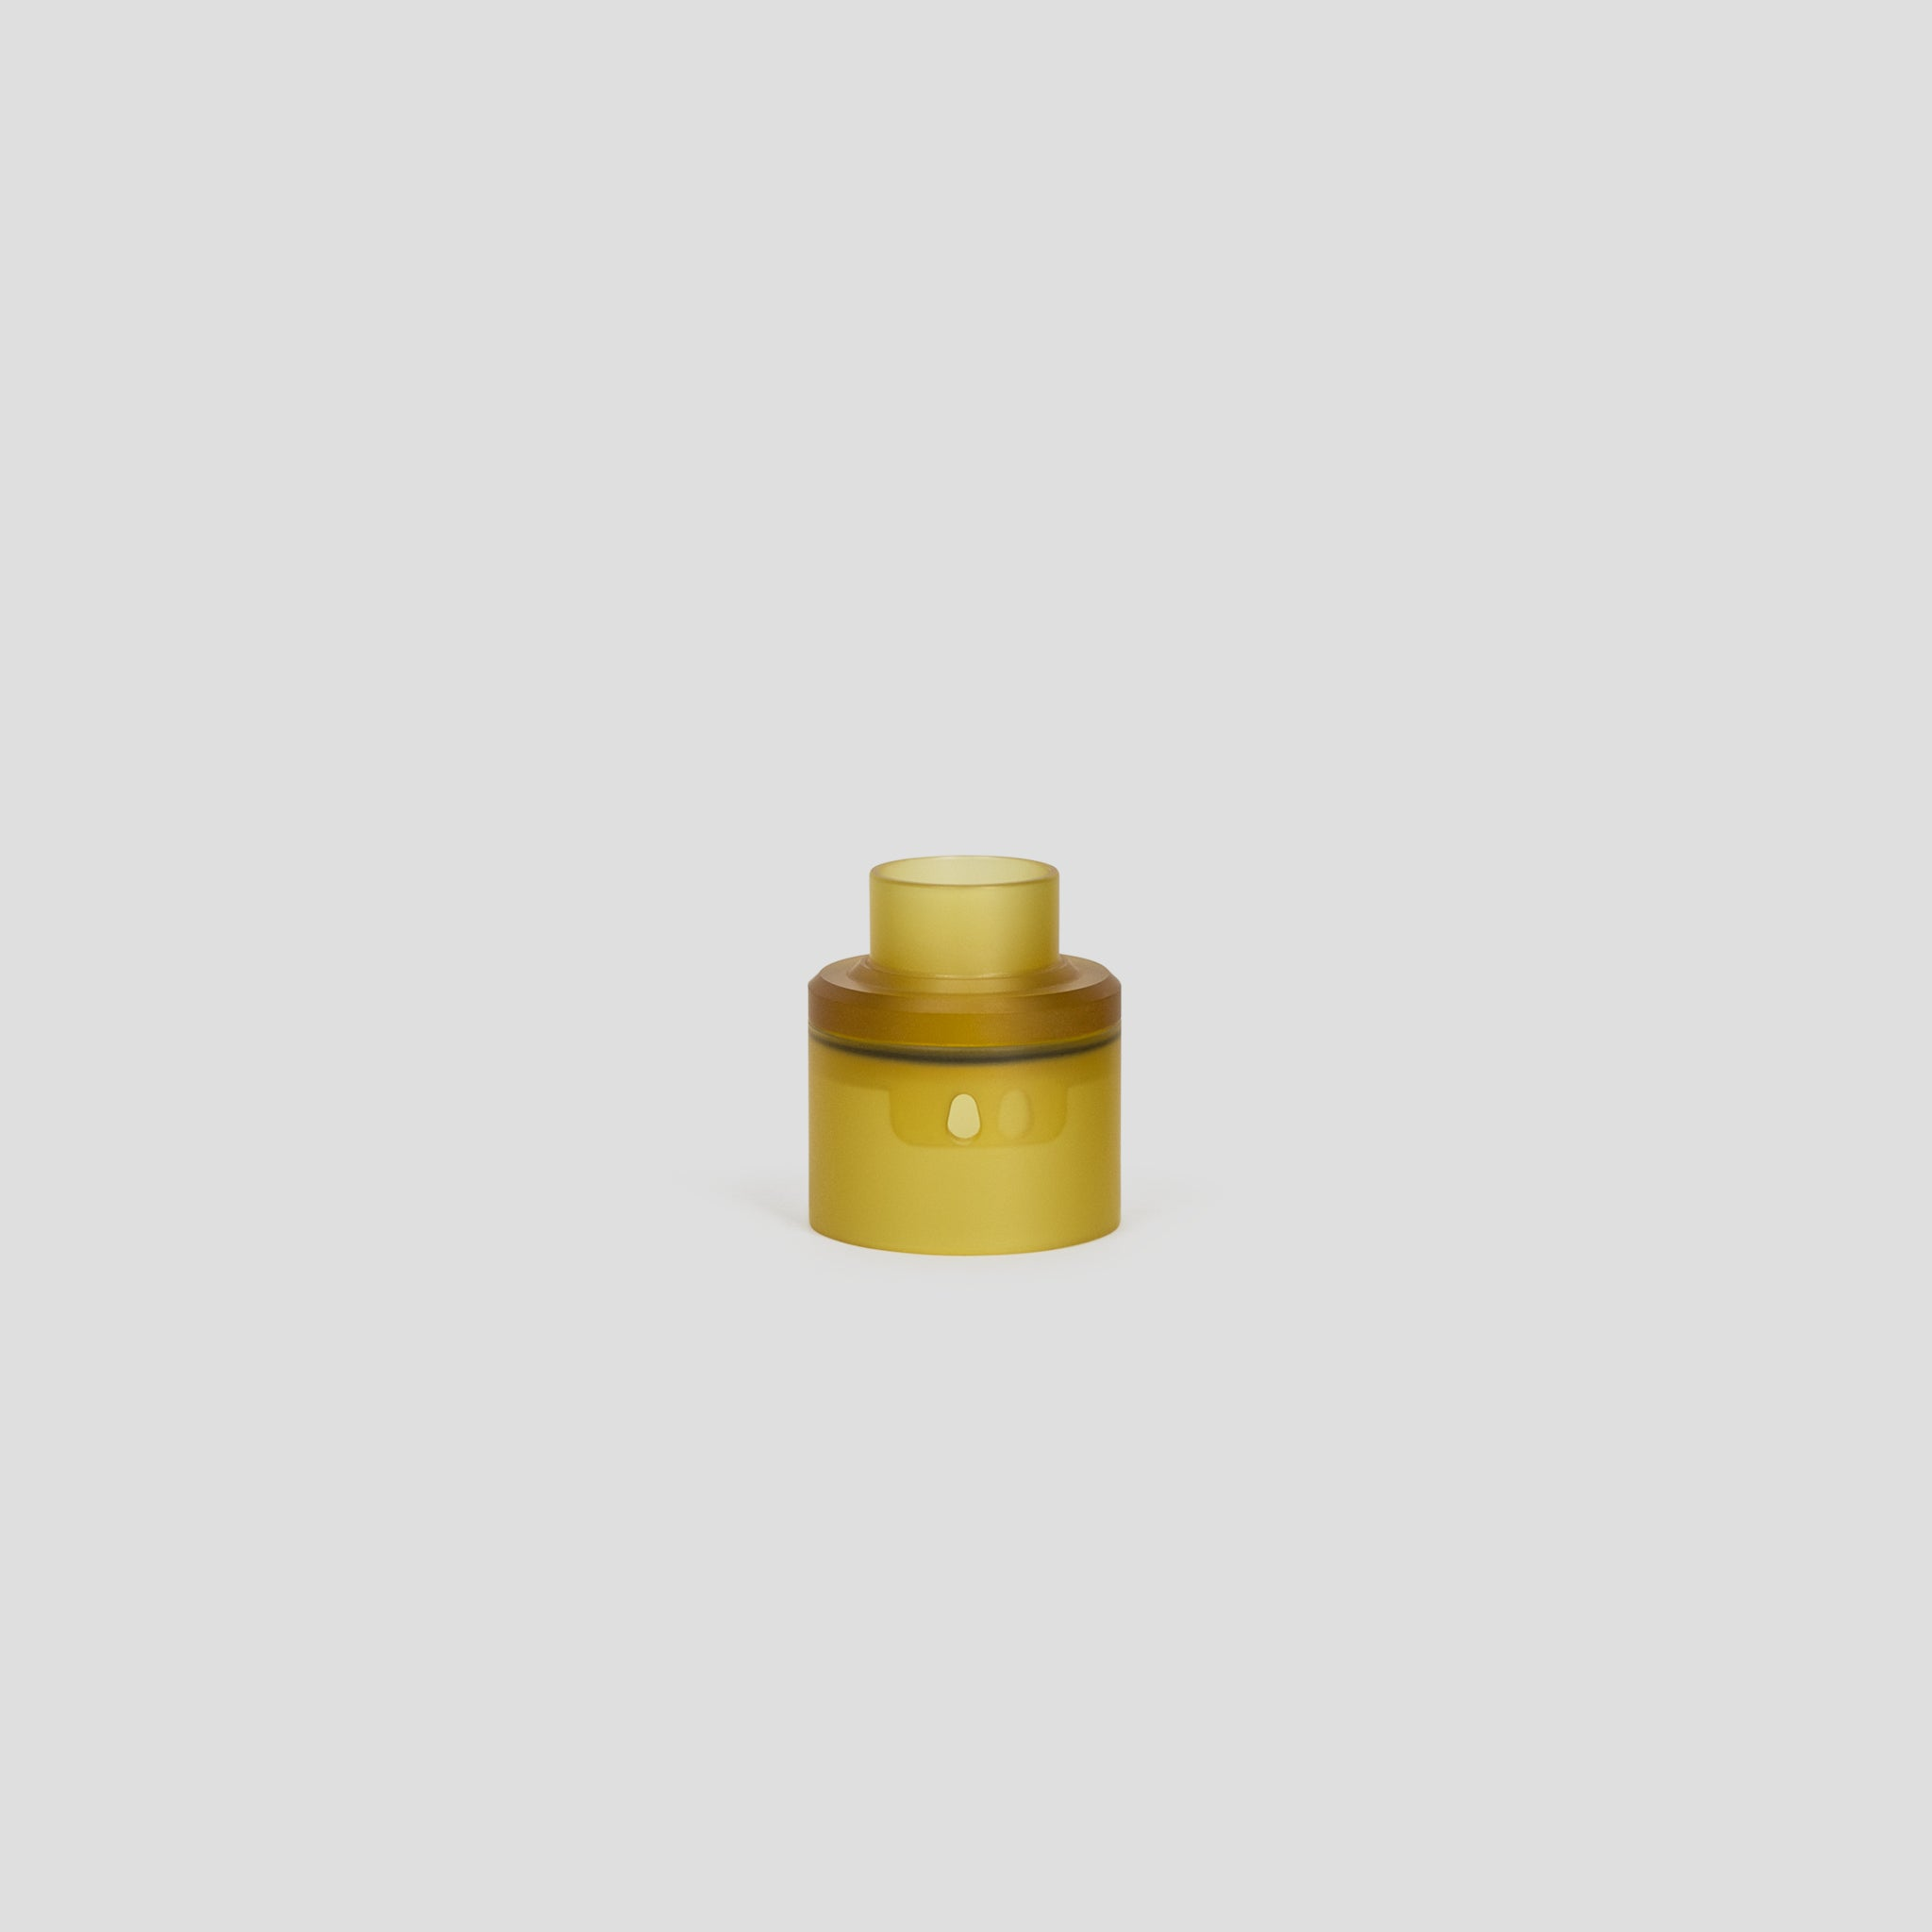 Odis Design O-Atty V2 22 Caps